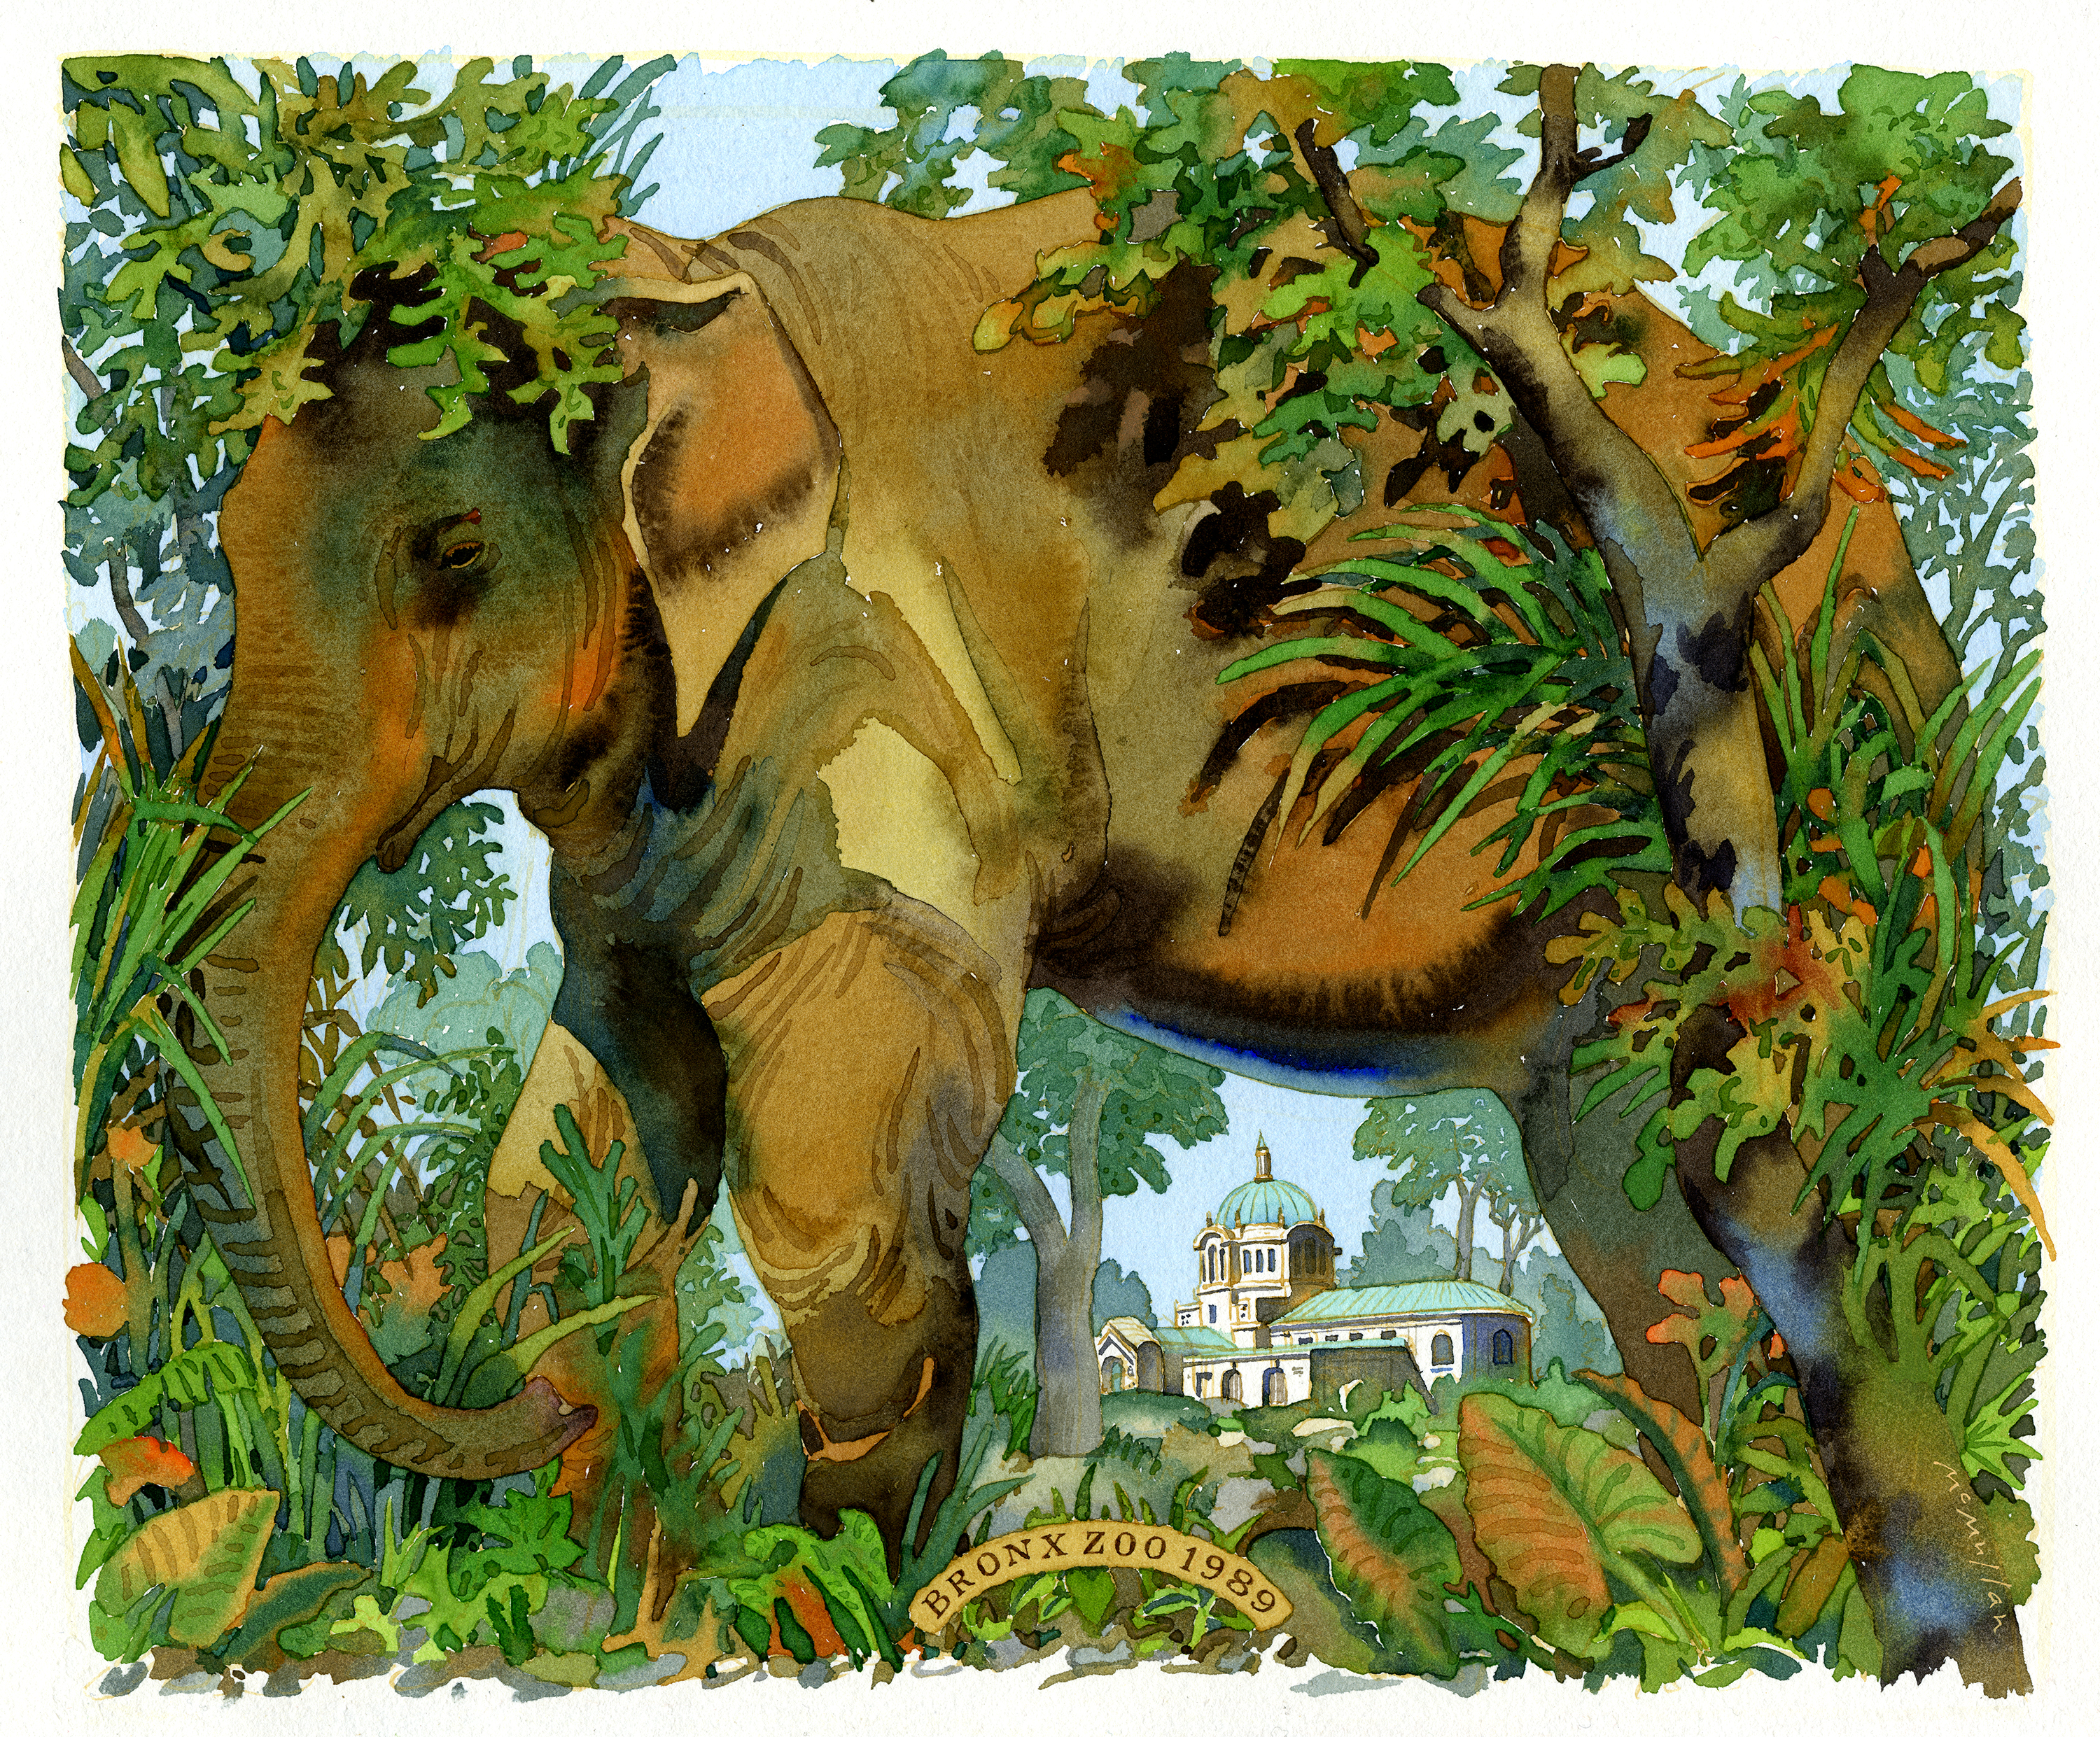 Color watercolor illustration of an elephant surrounded by foliage; an ornate building is visible in the background.